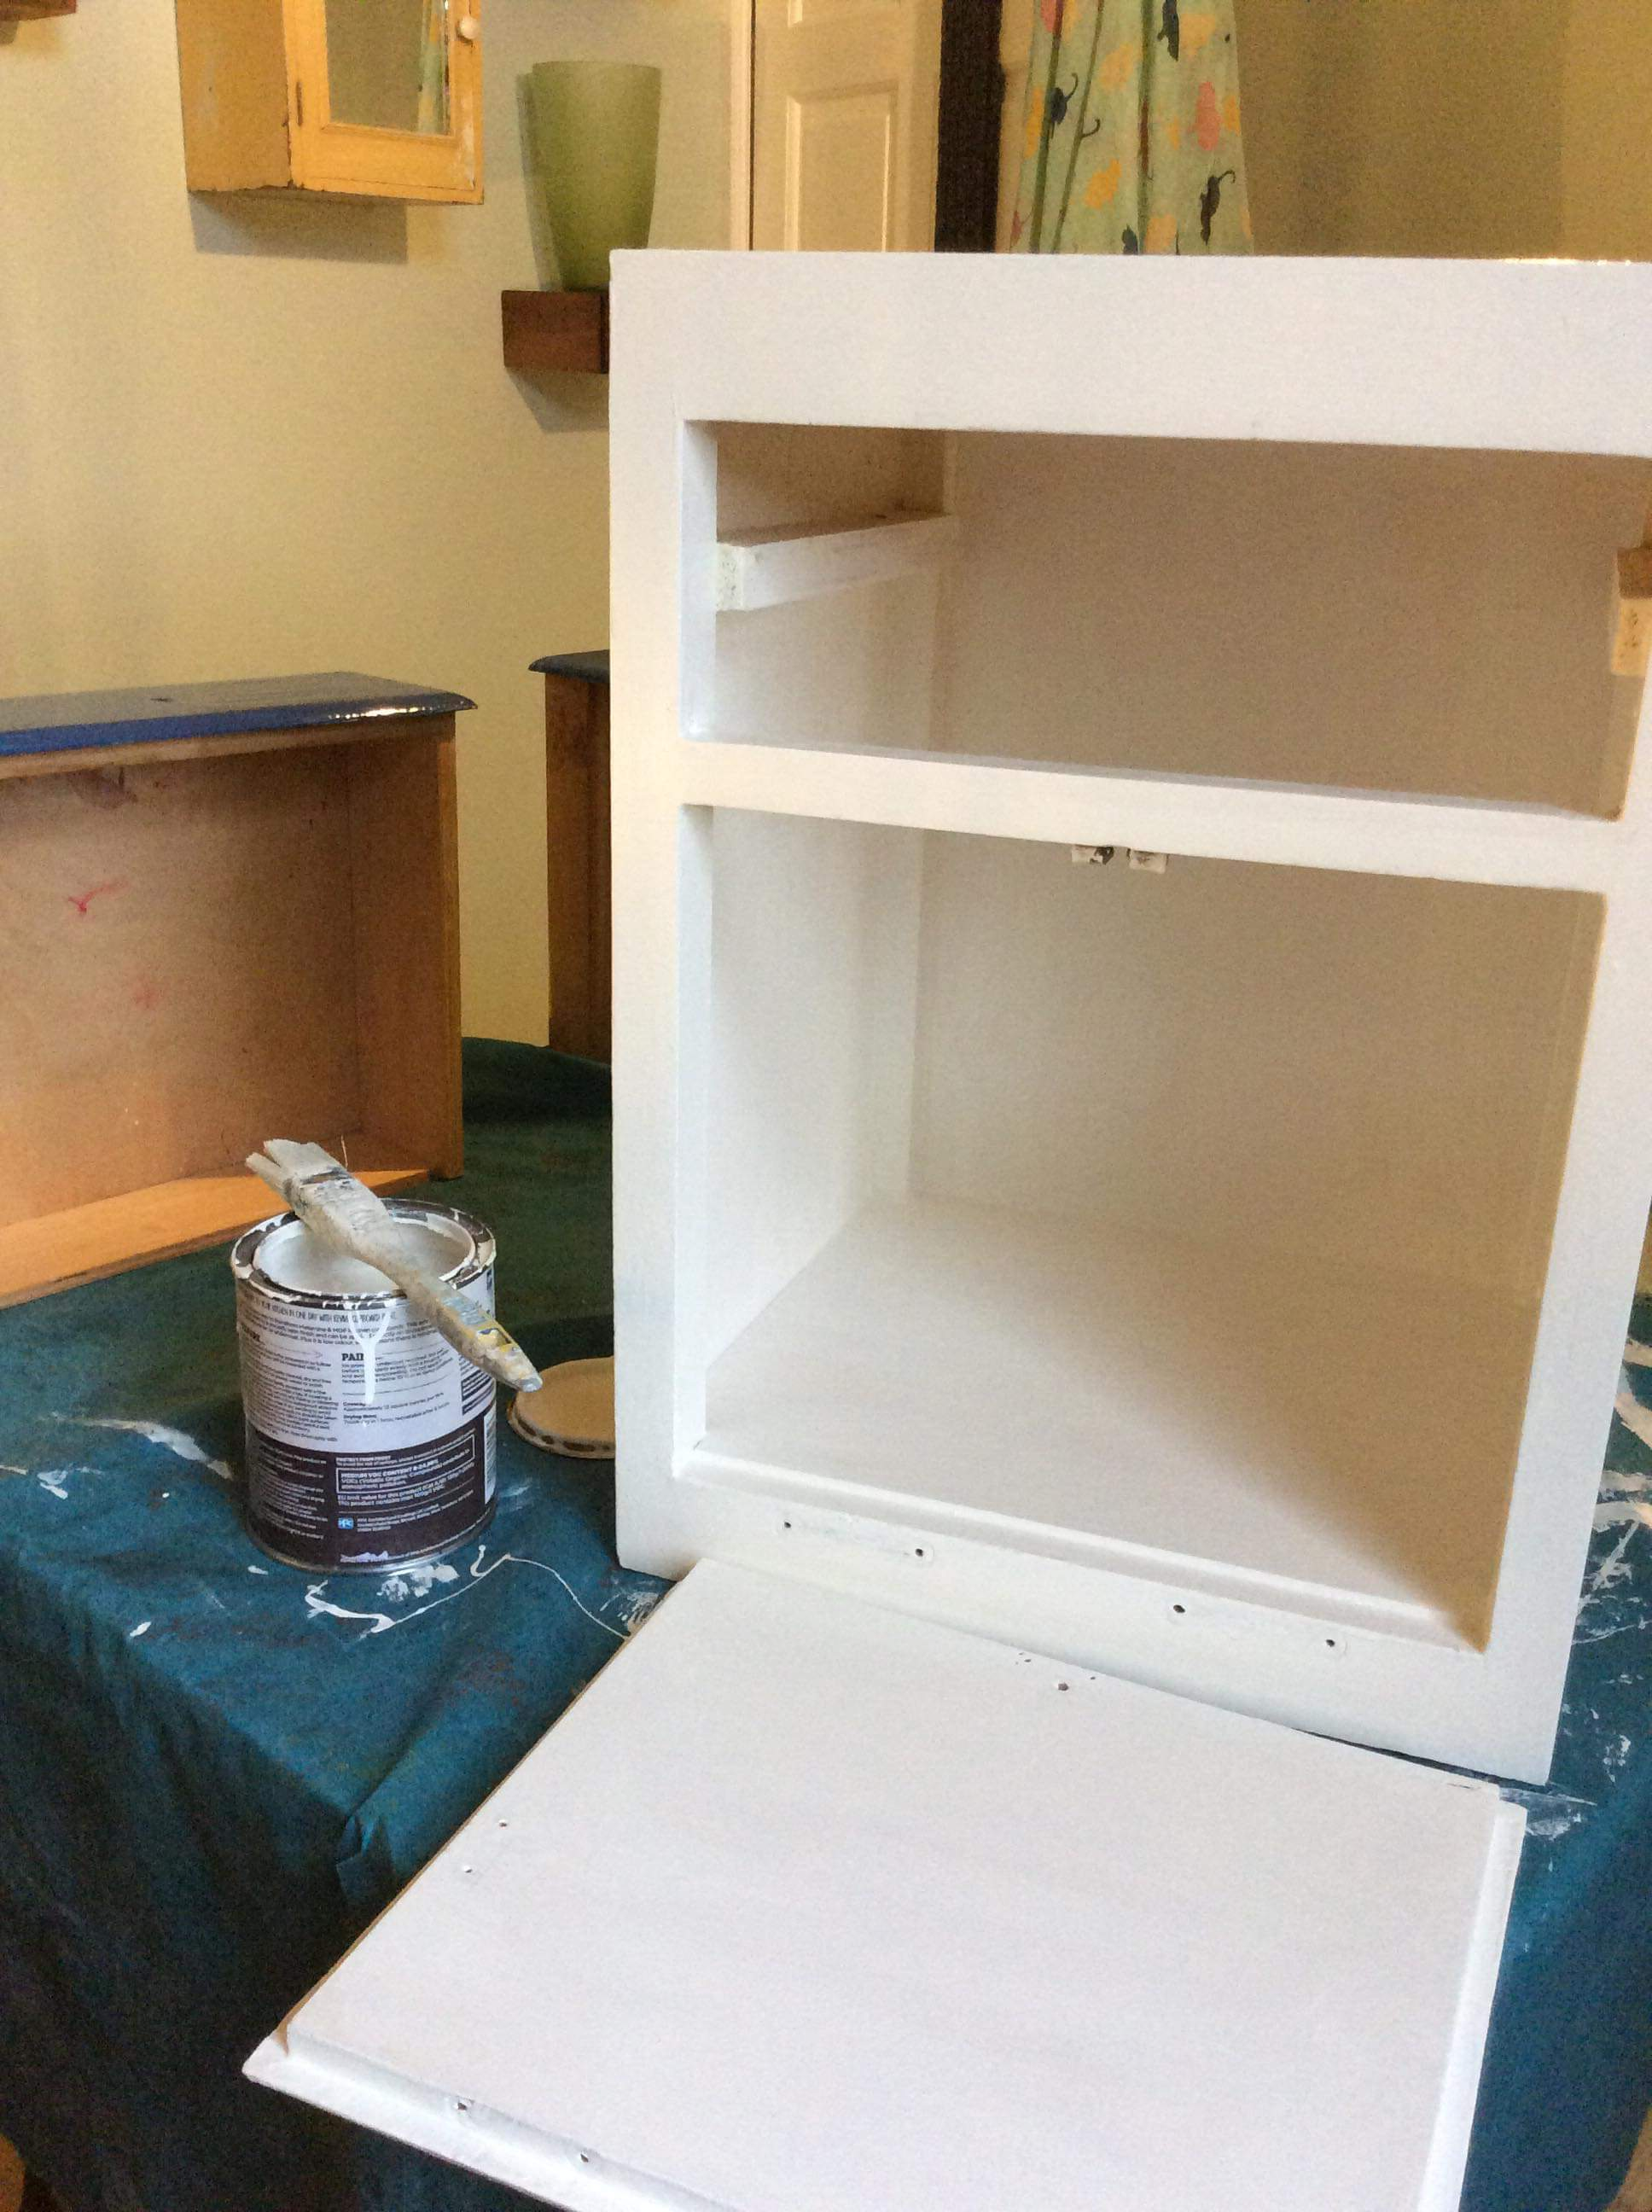 Chest of drawers in the process of being upcycled using recycled paint from Community RePaint Bristol City.